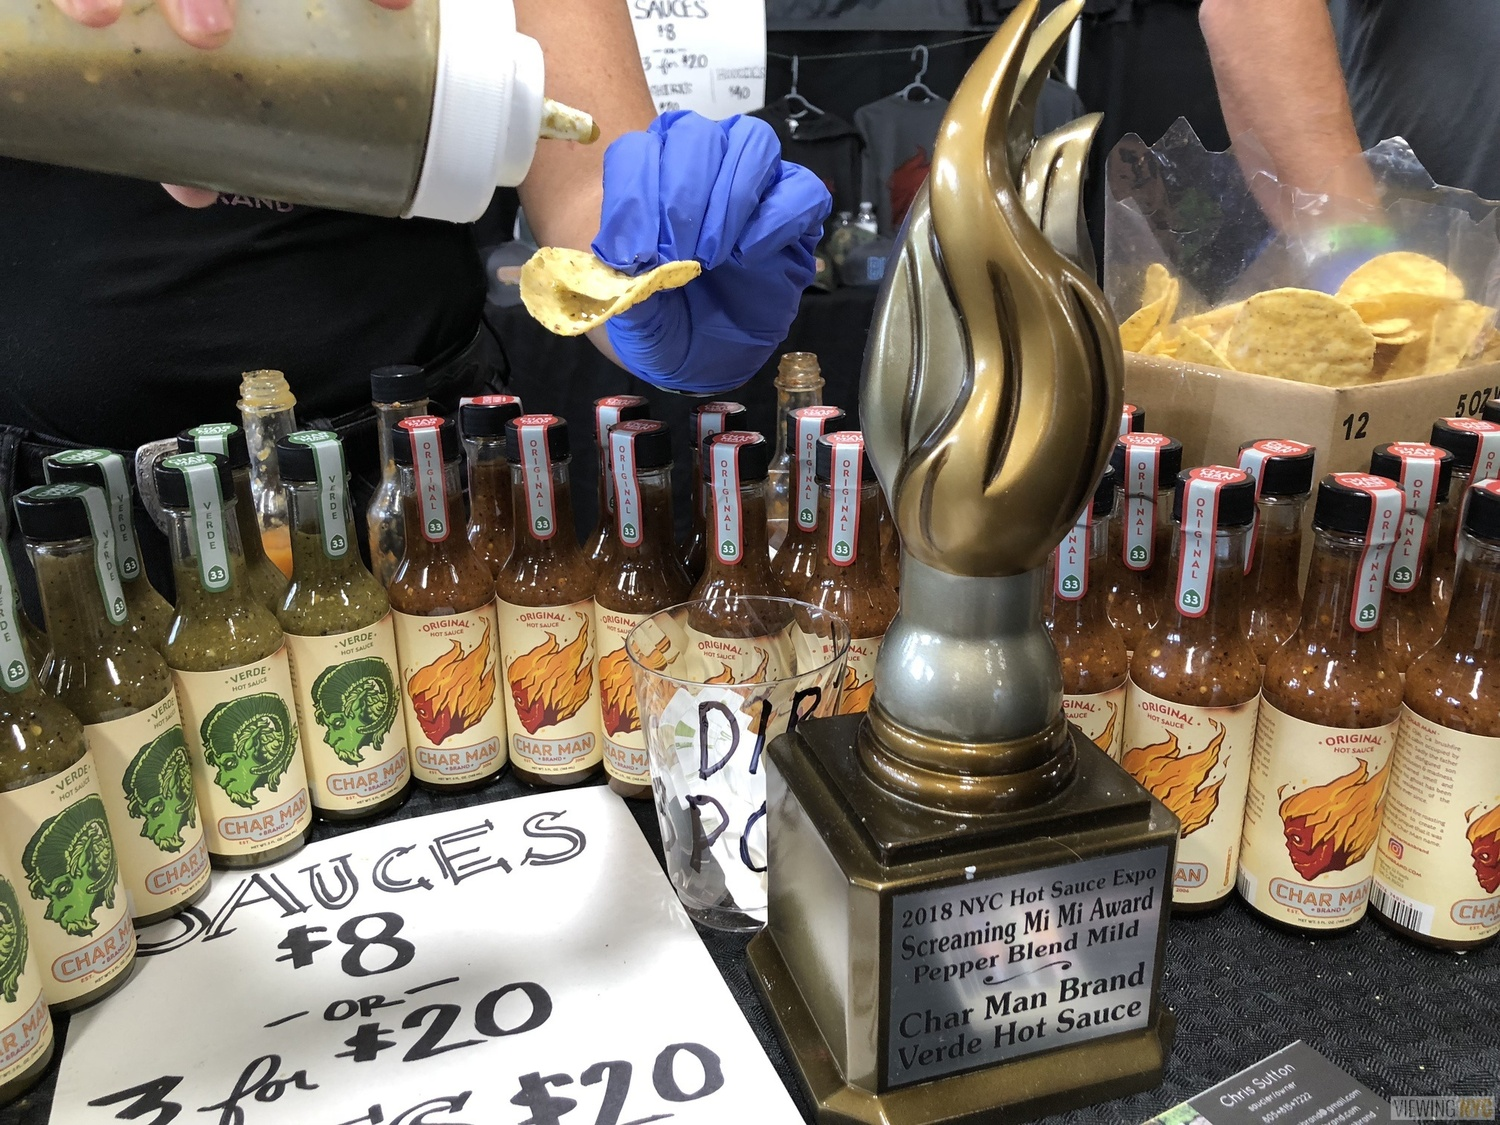 Char Man Brand Hot Sauce and Trophy | 2018 New York City Hot Sauce Expo